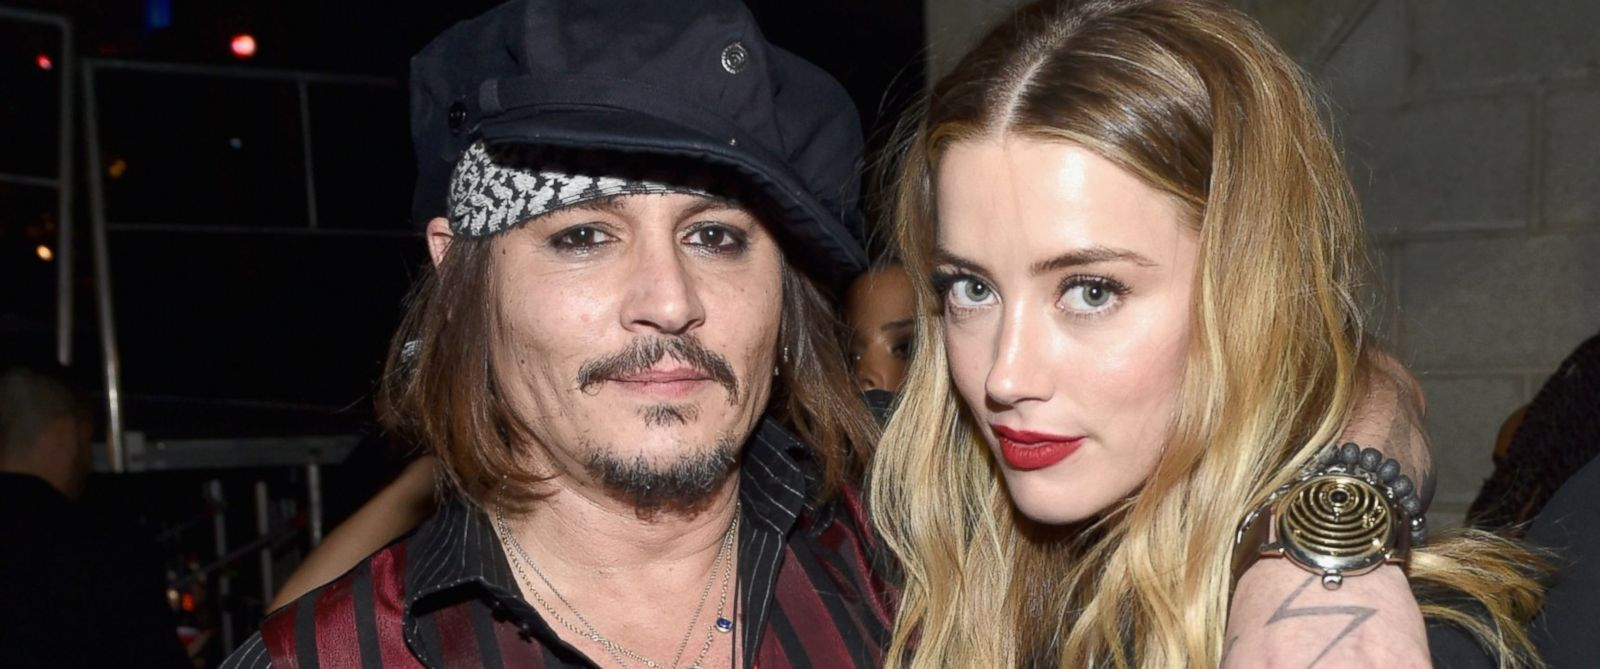 Johnny Depp and Amber Heard Split